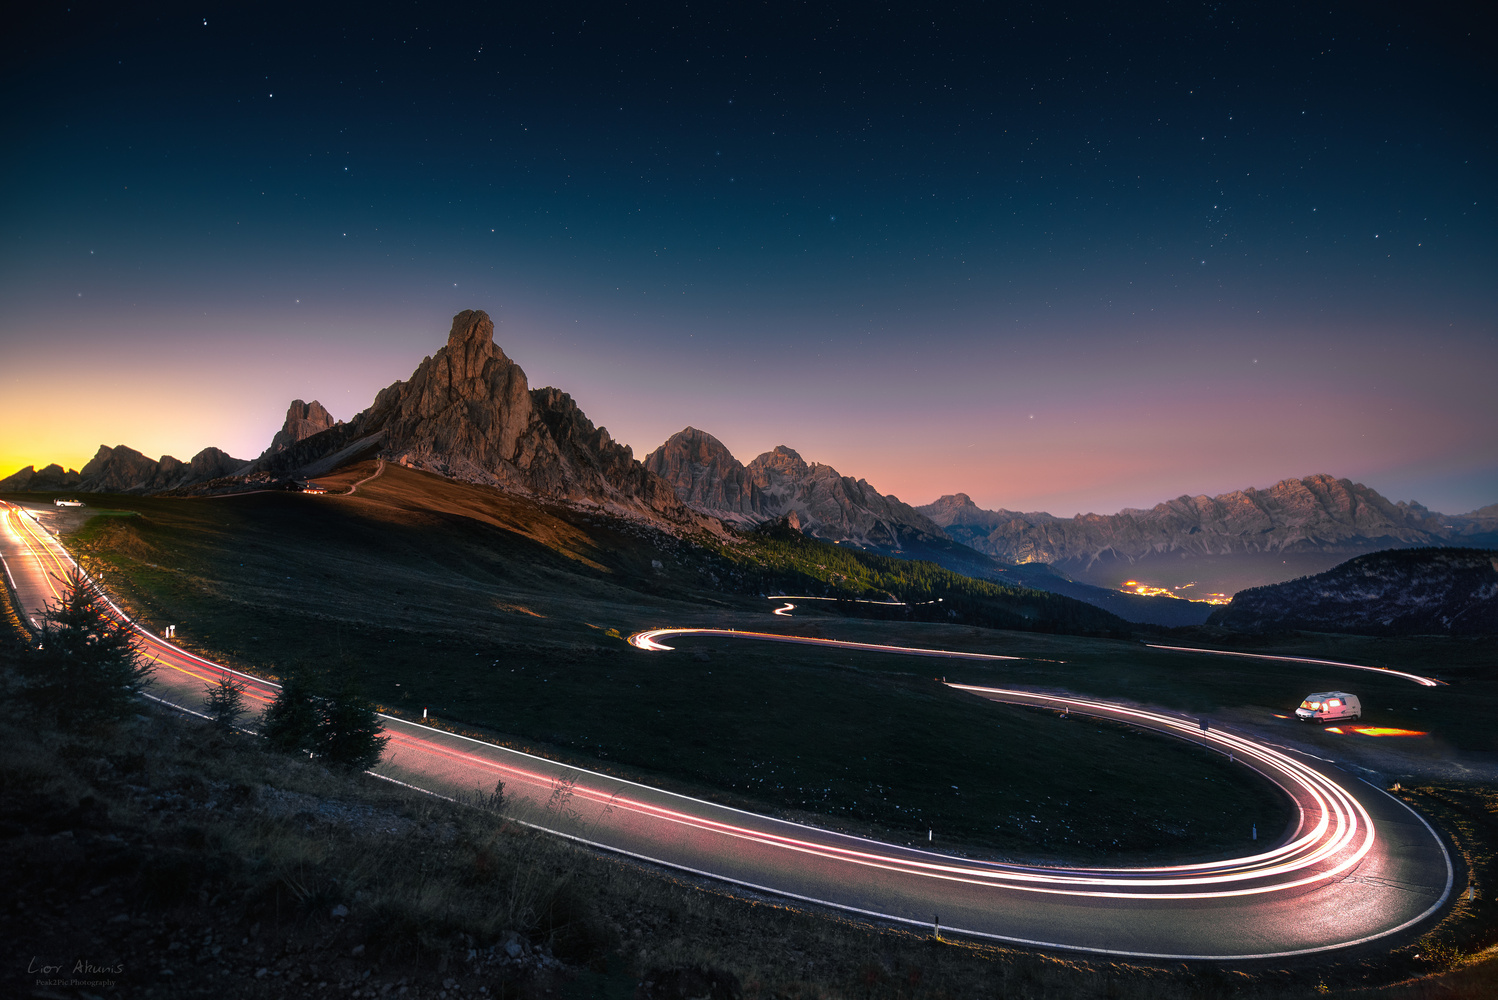 Tales of the Pass by Lior Akunis